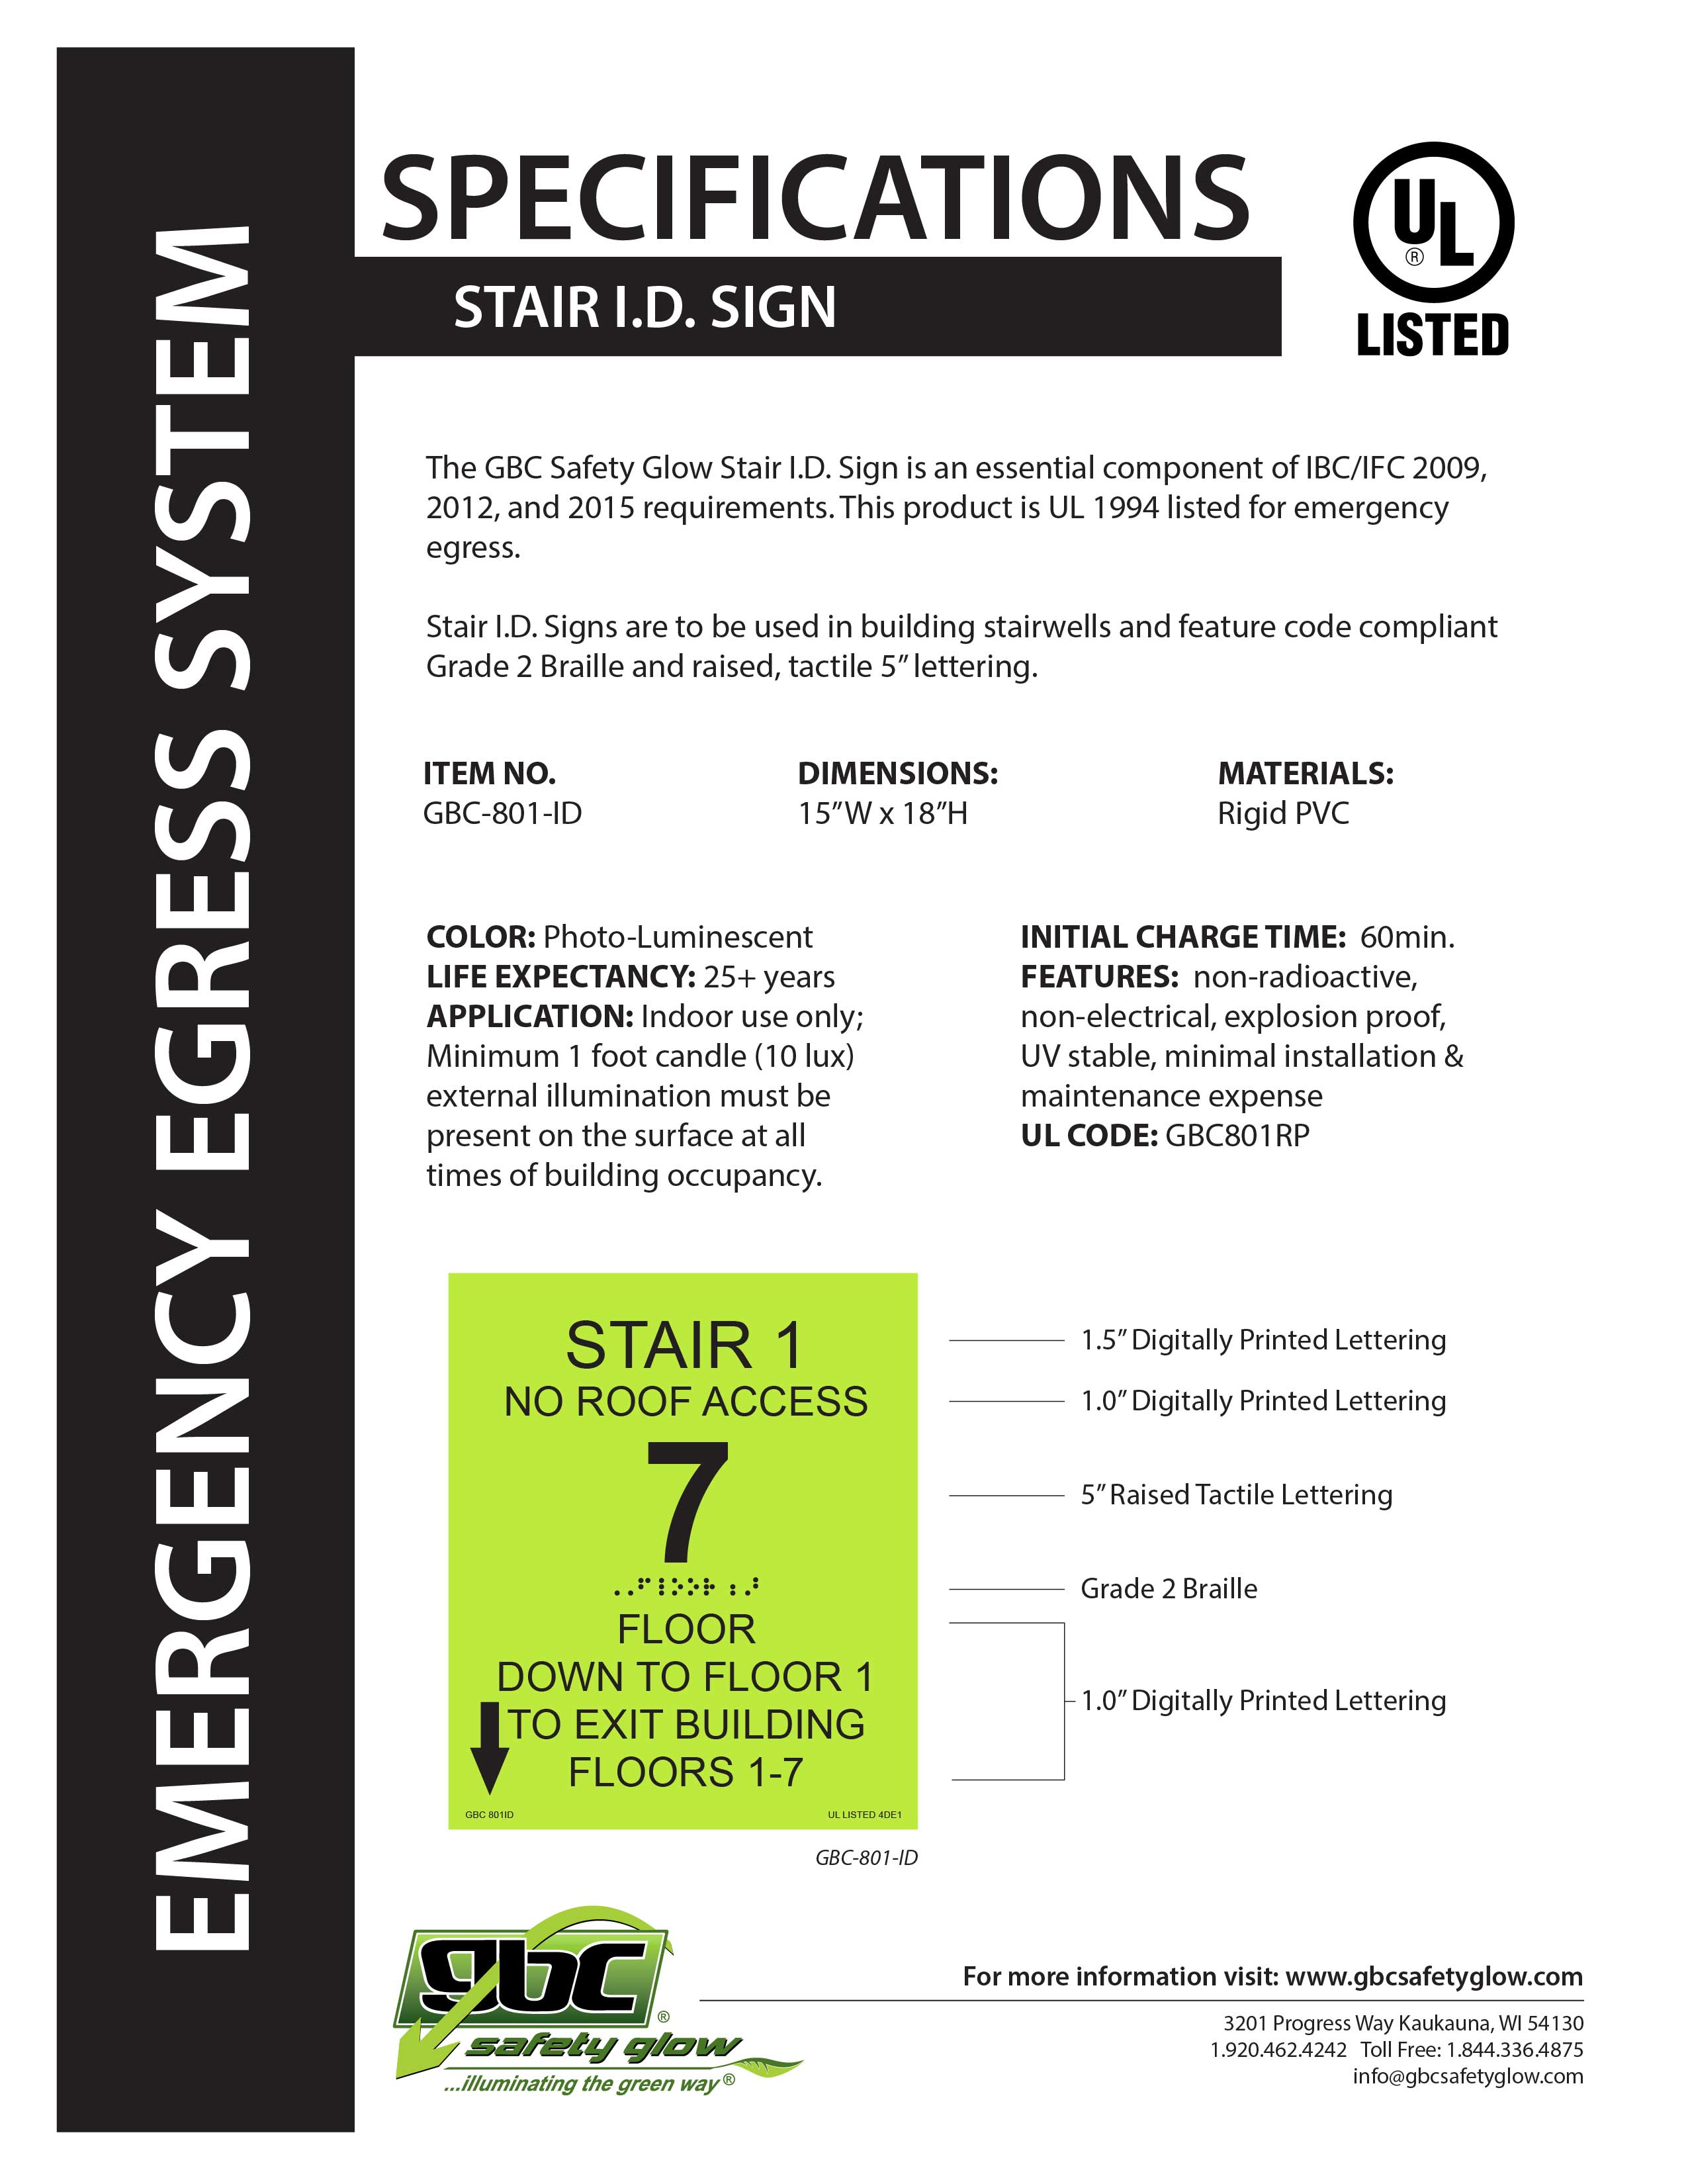 Stair I.D. Signs